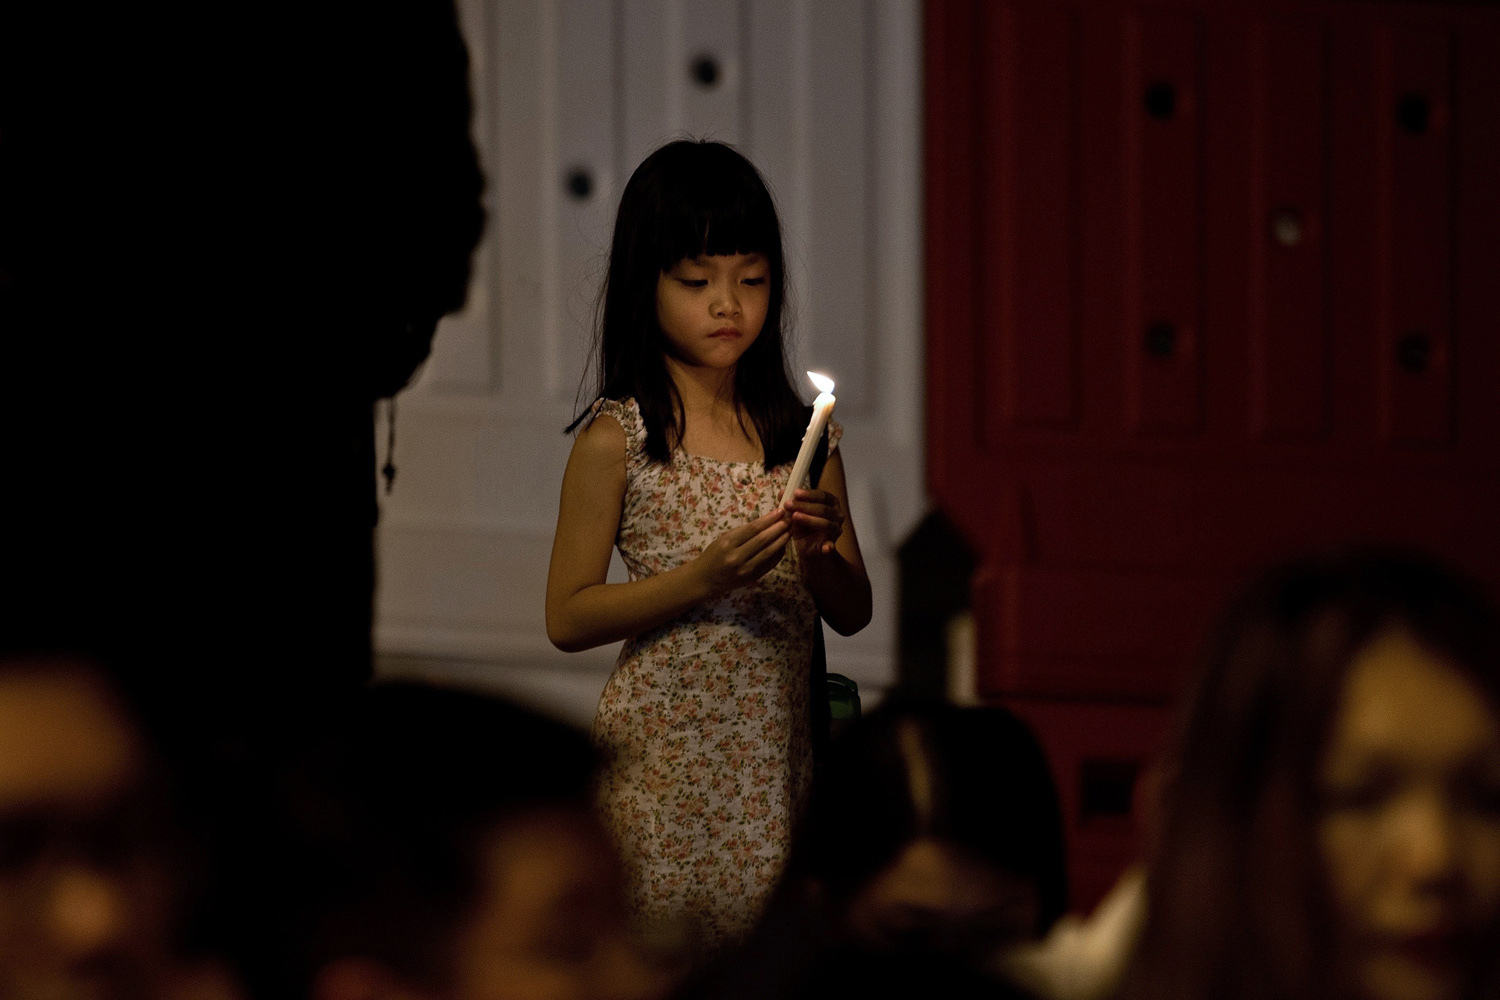 Apr. 8, 2014. A Malaysian girl takes part in a candle-light vigil to mark the one-month anniversary of the missing Malaysia Airlines MH370 flight at the Independence Square in Kuala Lumpur.